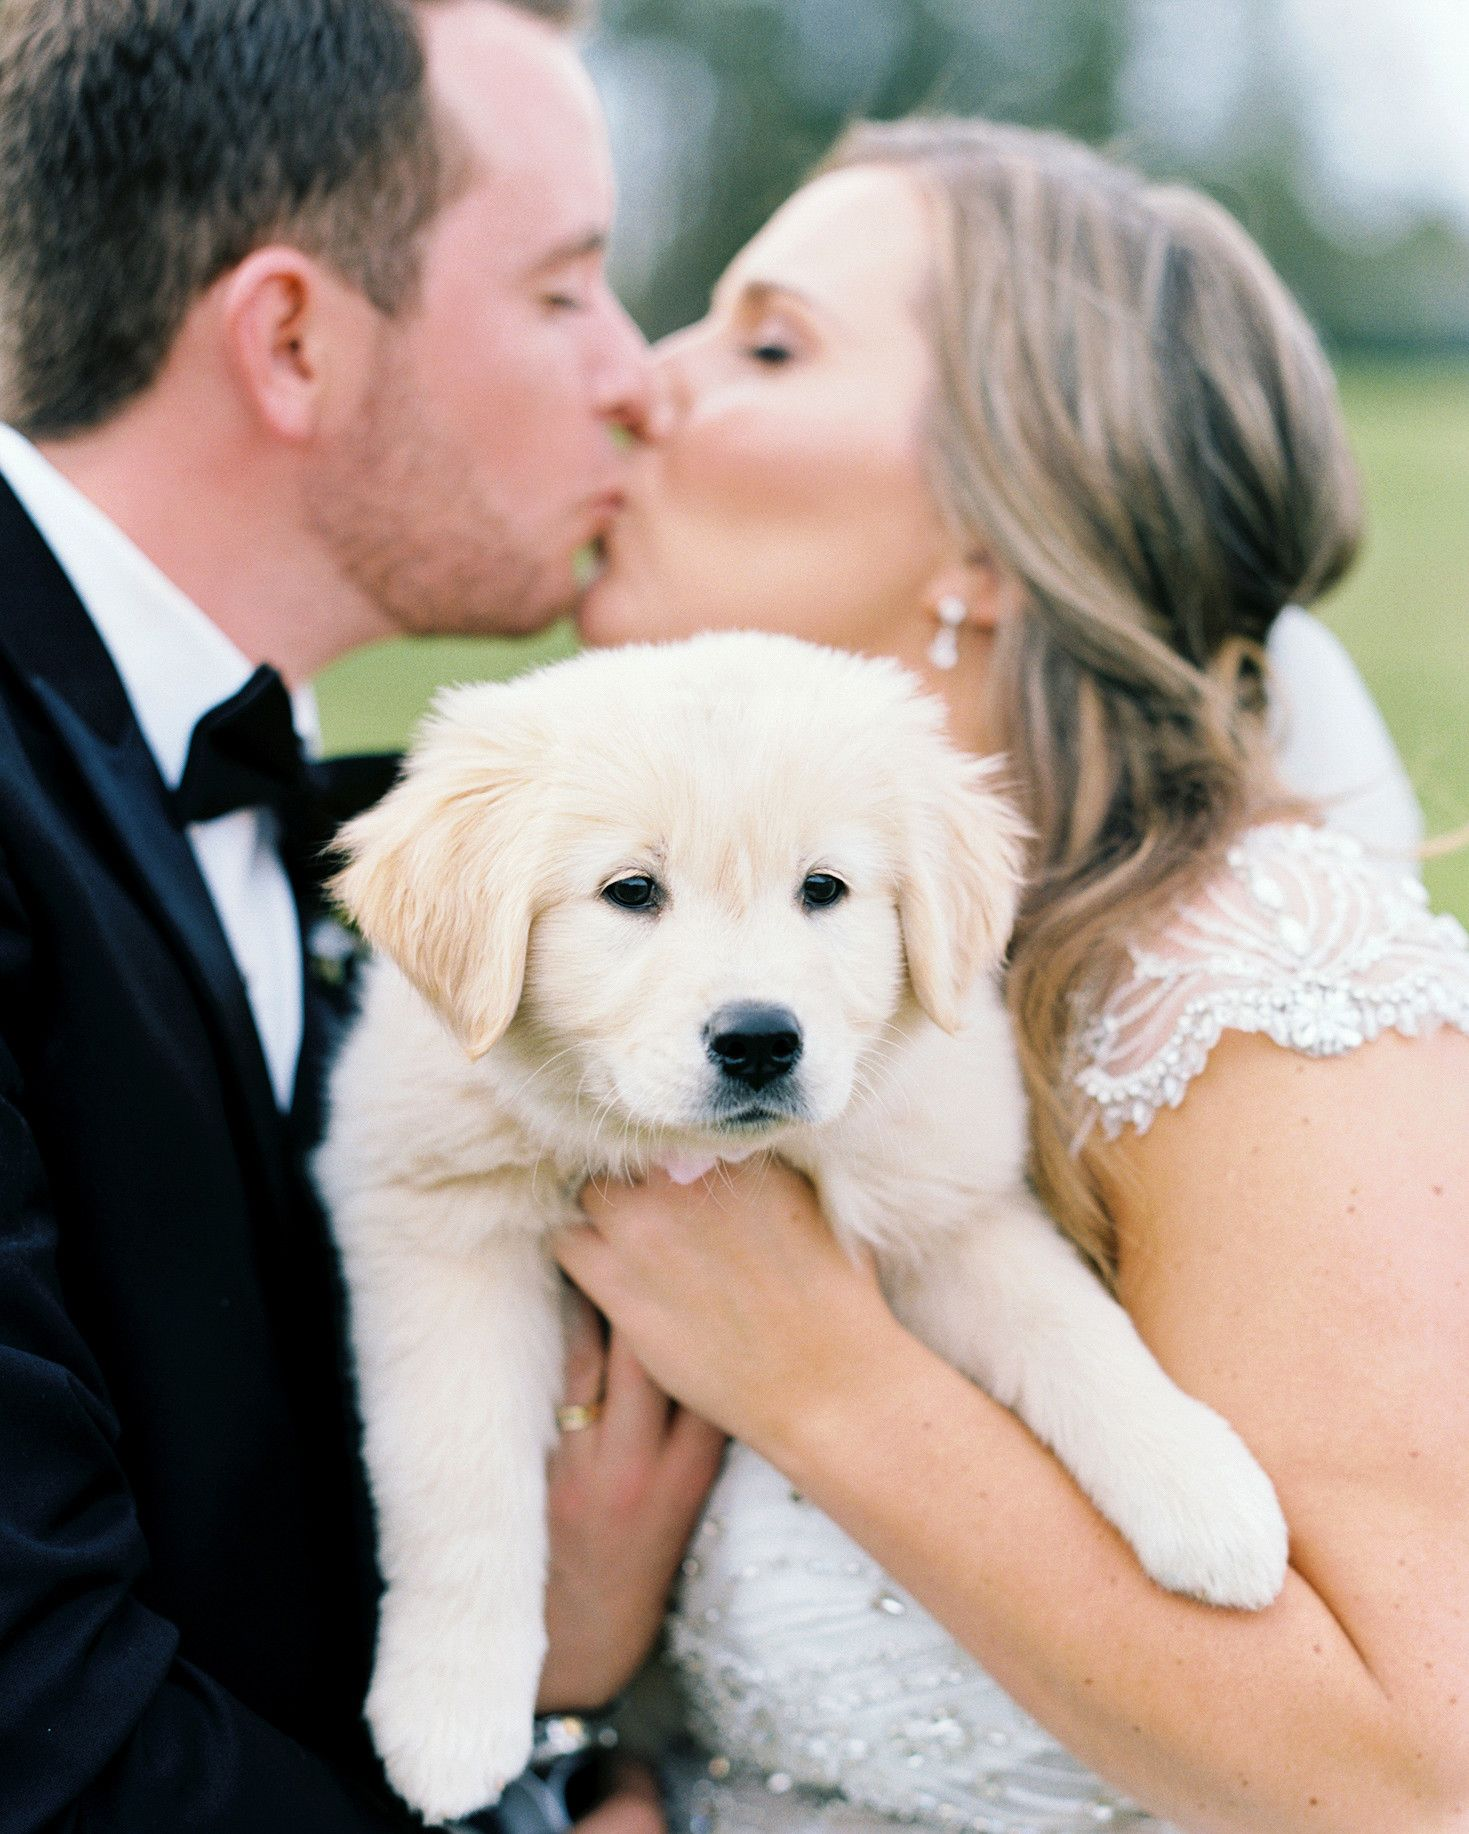 One Couple S Elegant Lakeside Wedding In South Carolina Golden Retriever Golden Retriever Puppy Puppy Wedding